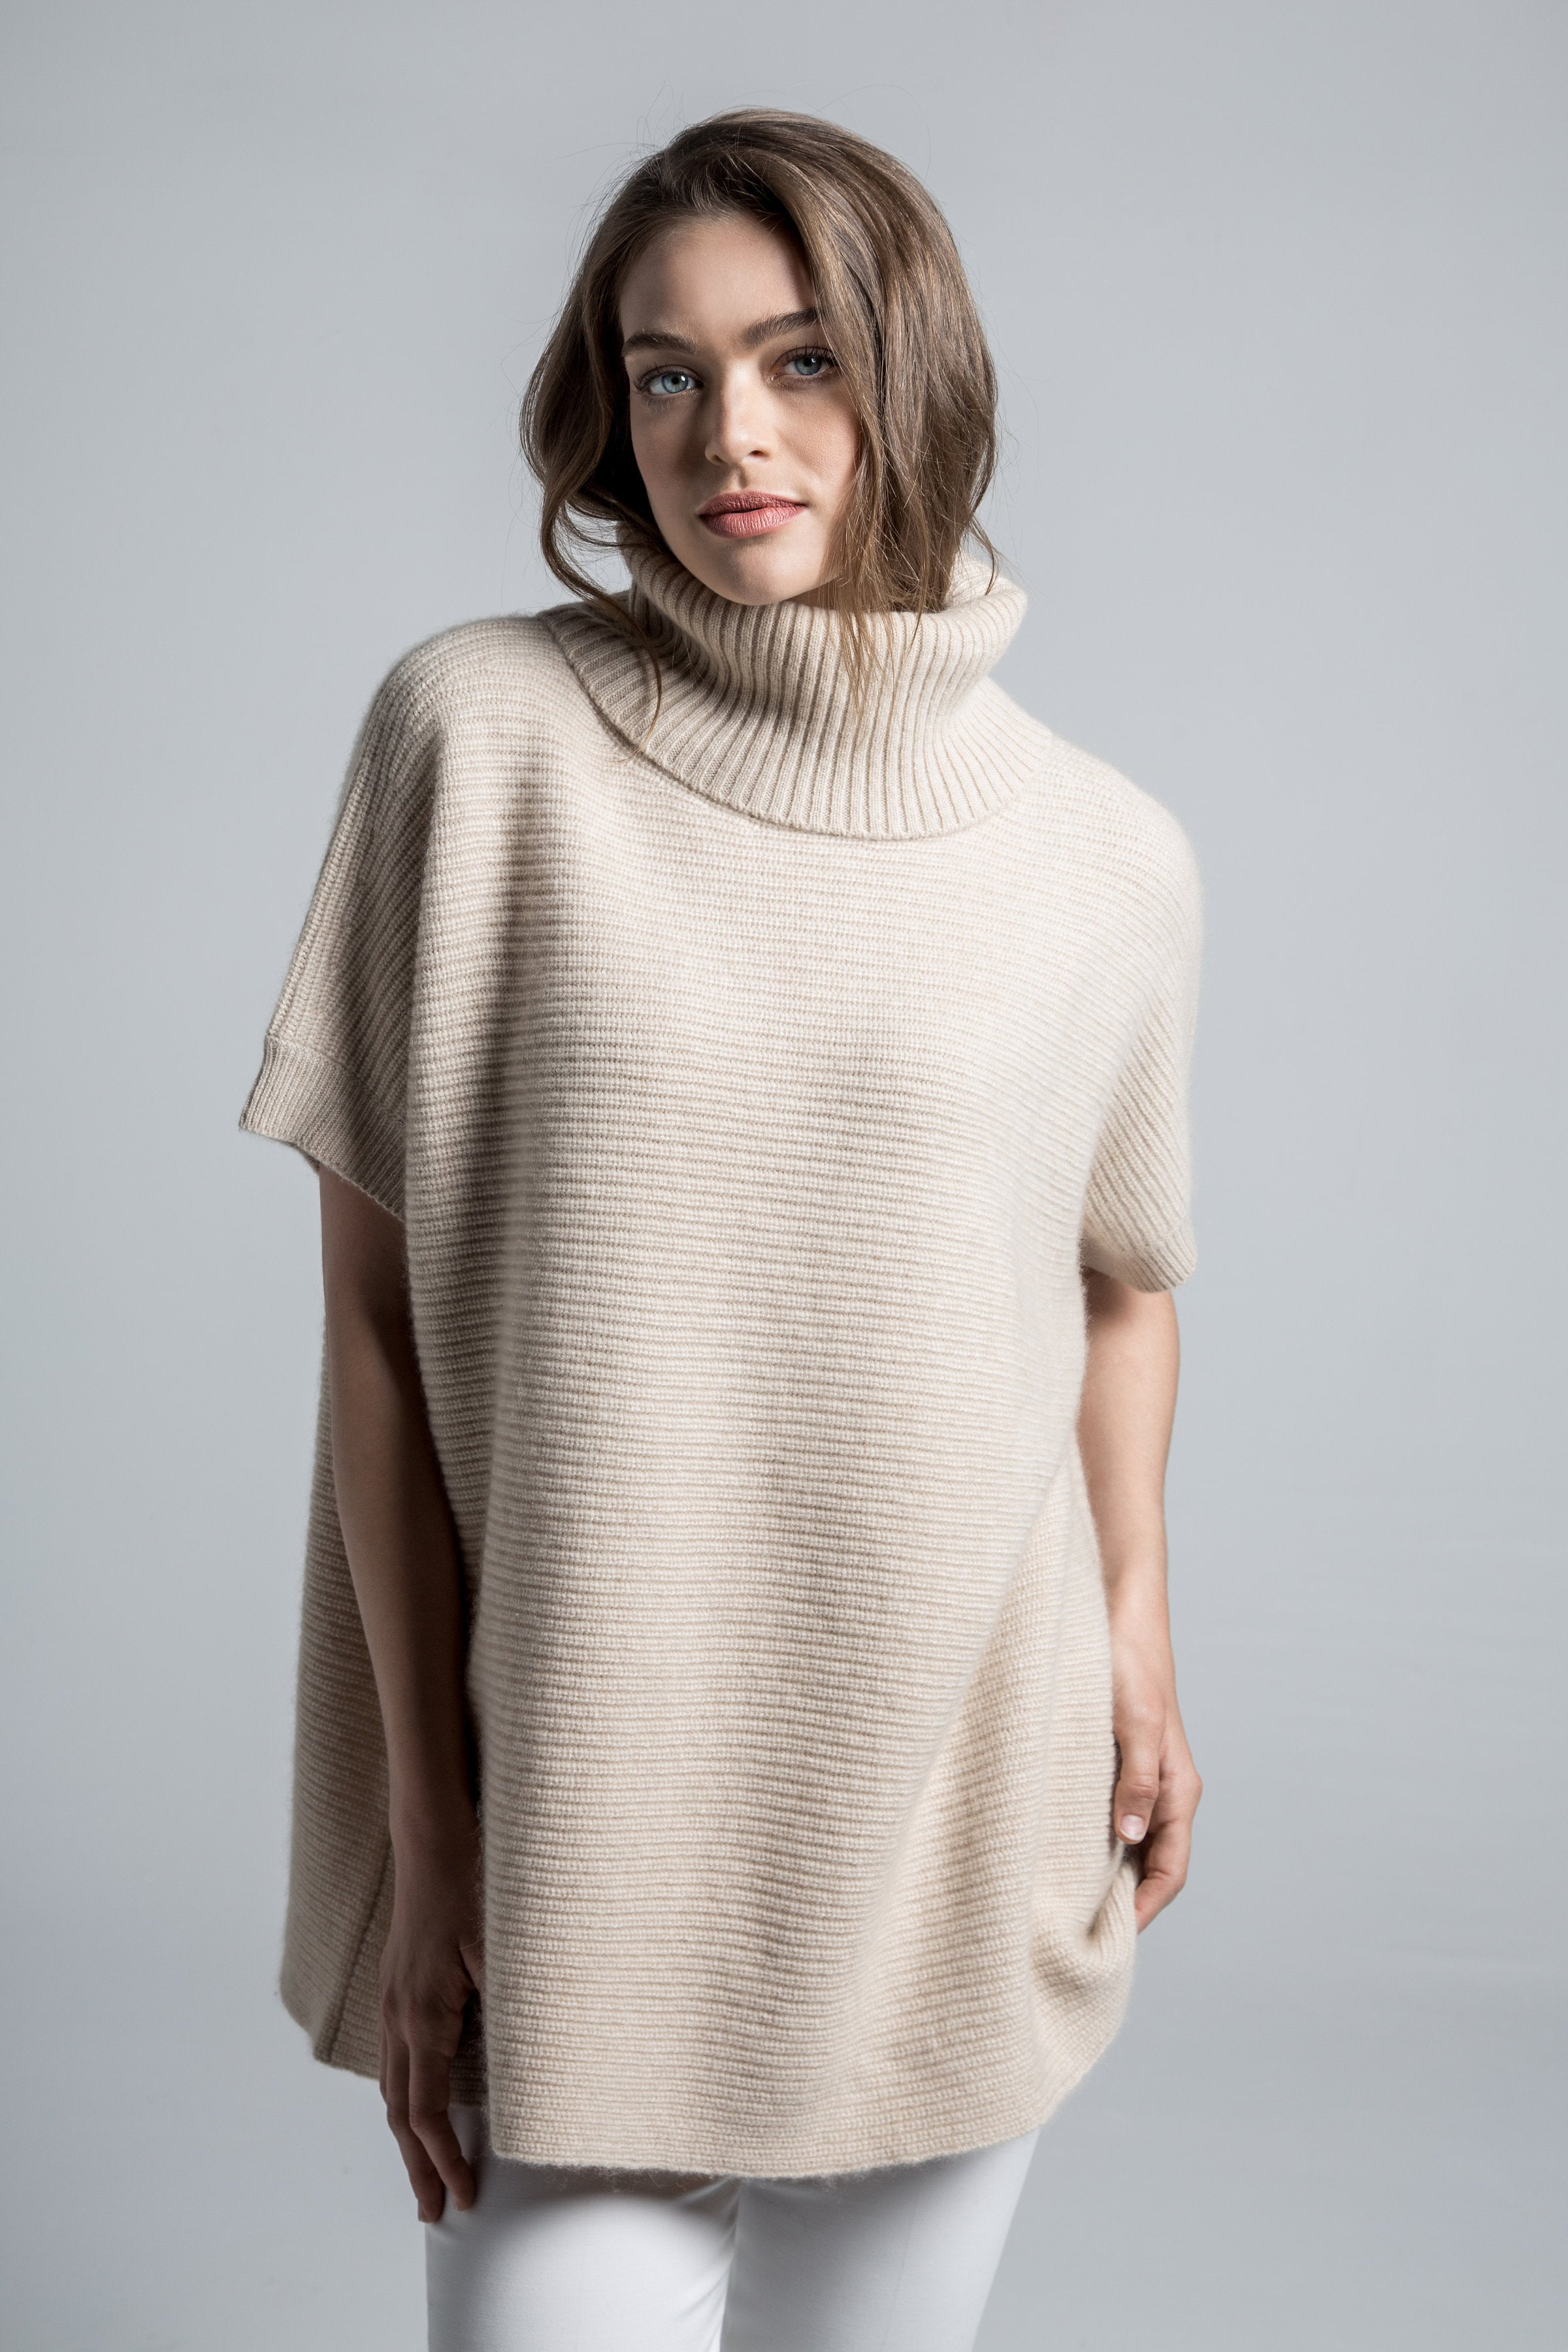 ... women s claire chunky knit oversized 100% pure organic cashmere  turtleneck sweater in tan beige ... 9165668ad